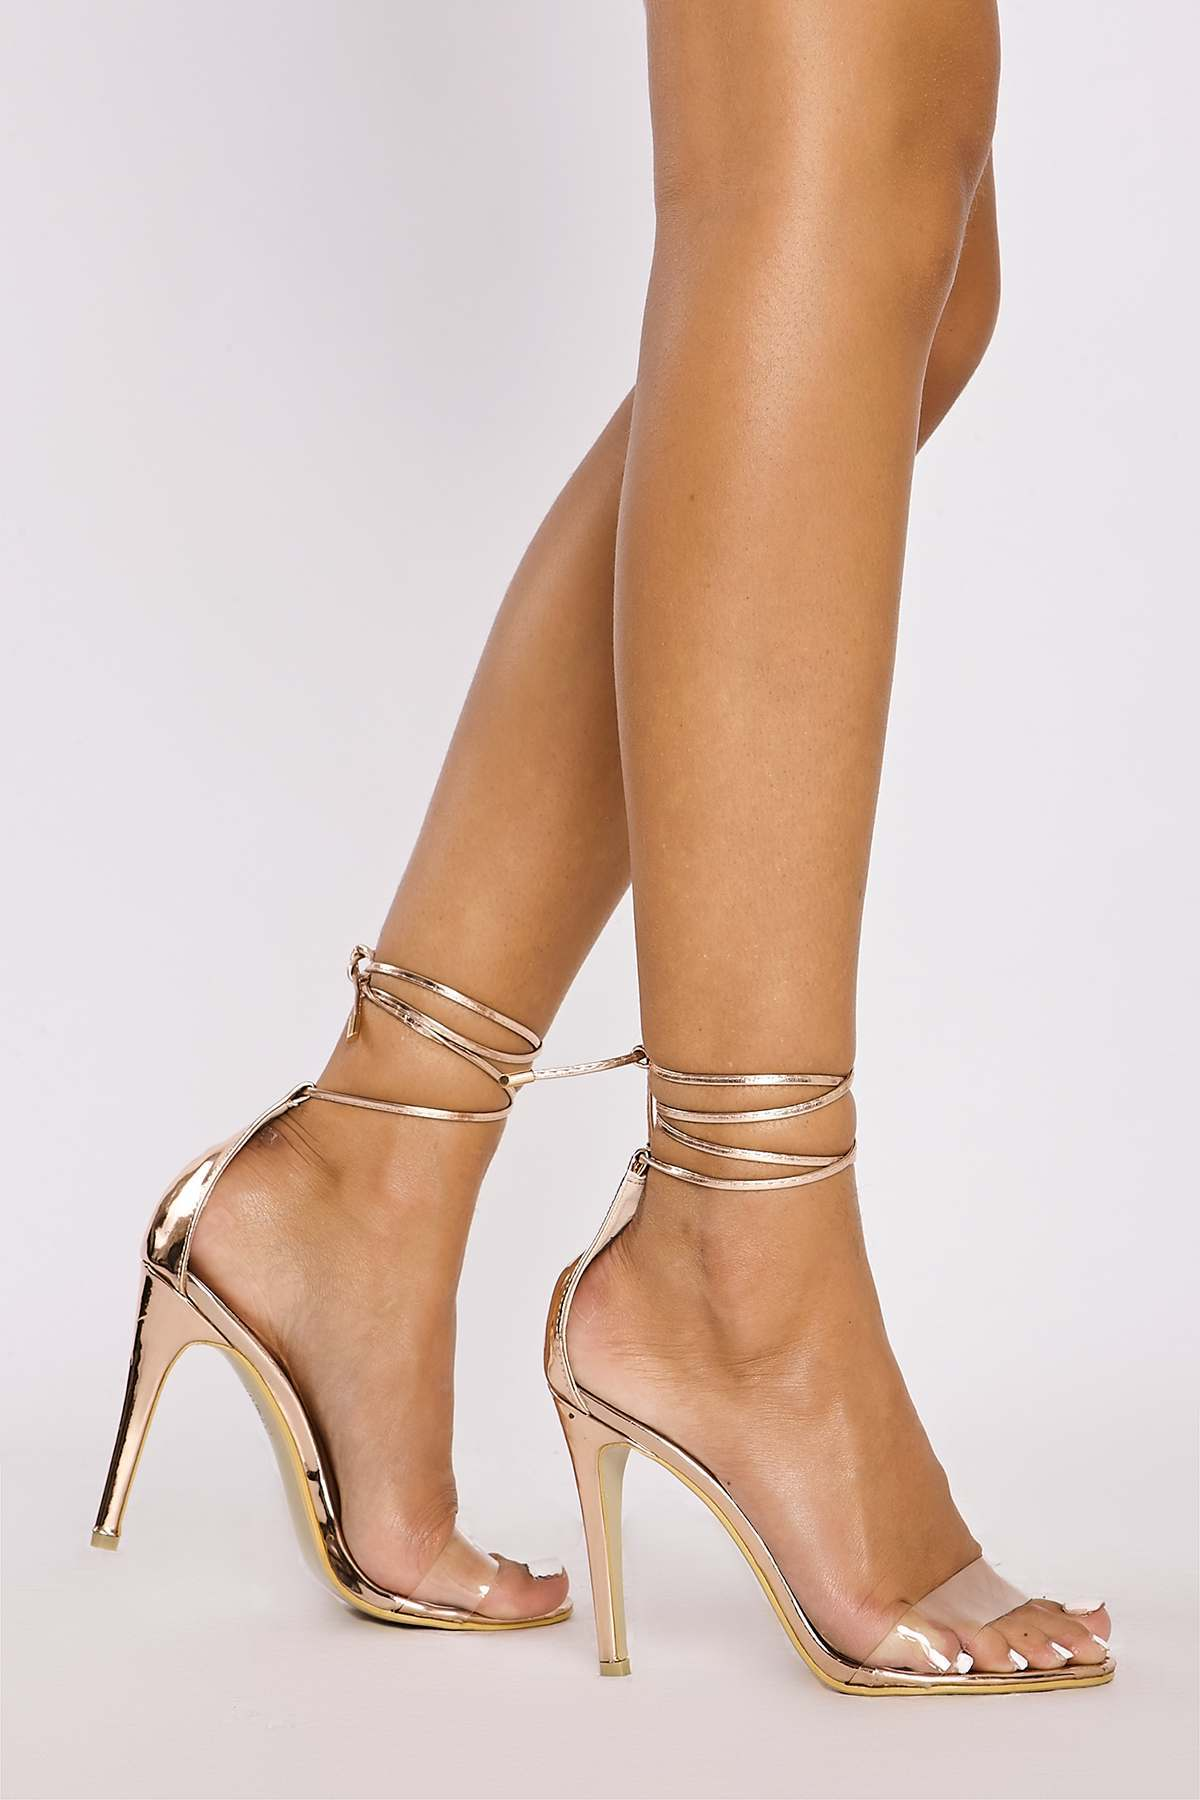 Alicia Rose Gold Chrome Clear Strap Tie Leg Heels In The